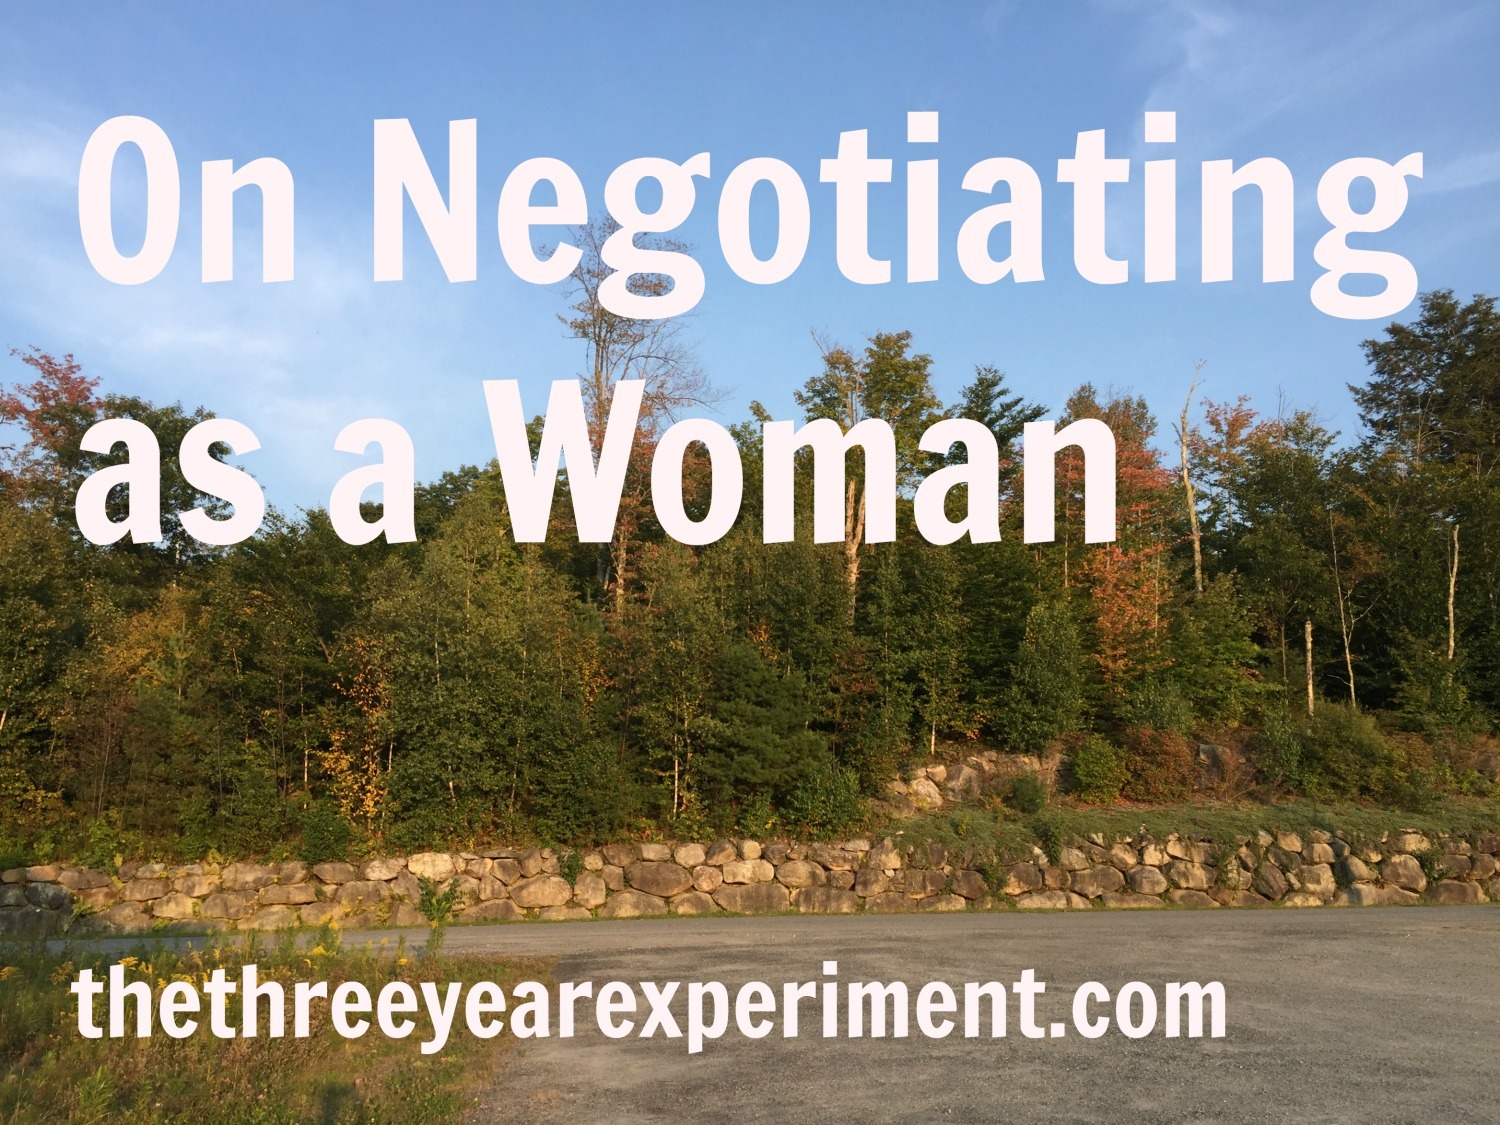 On Negotiating as a Woman--www.thethreeyearexperiment.com